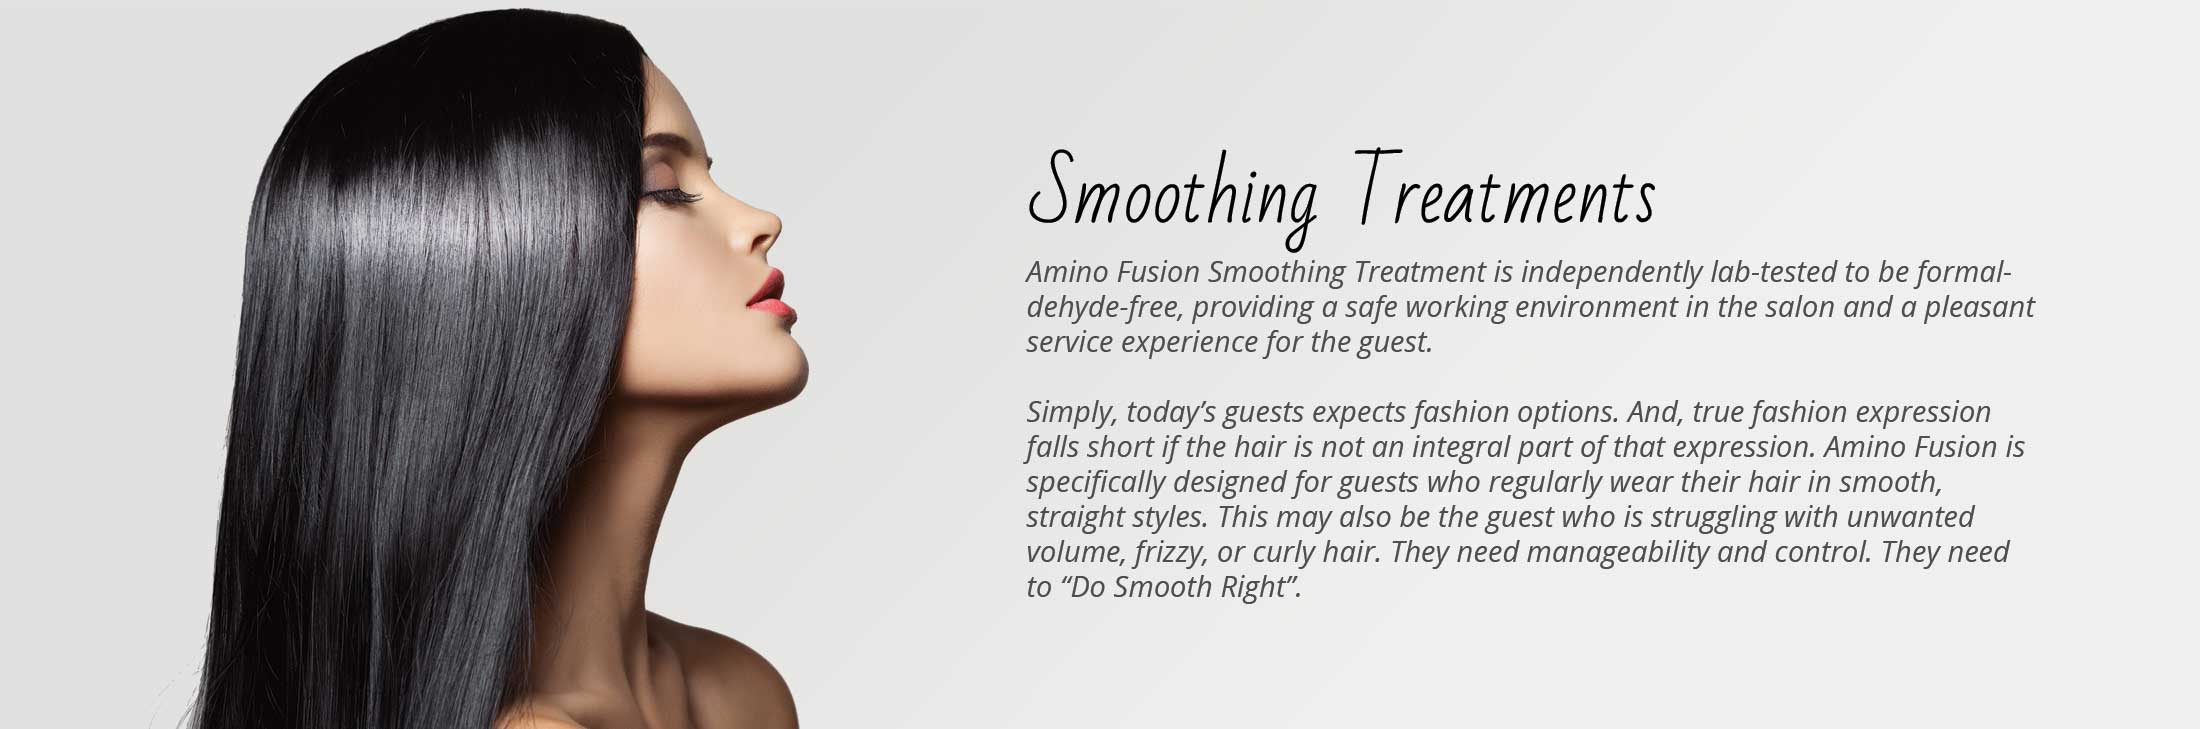 smoothing treatments